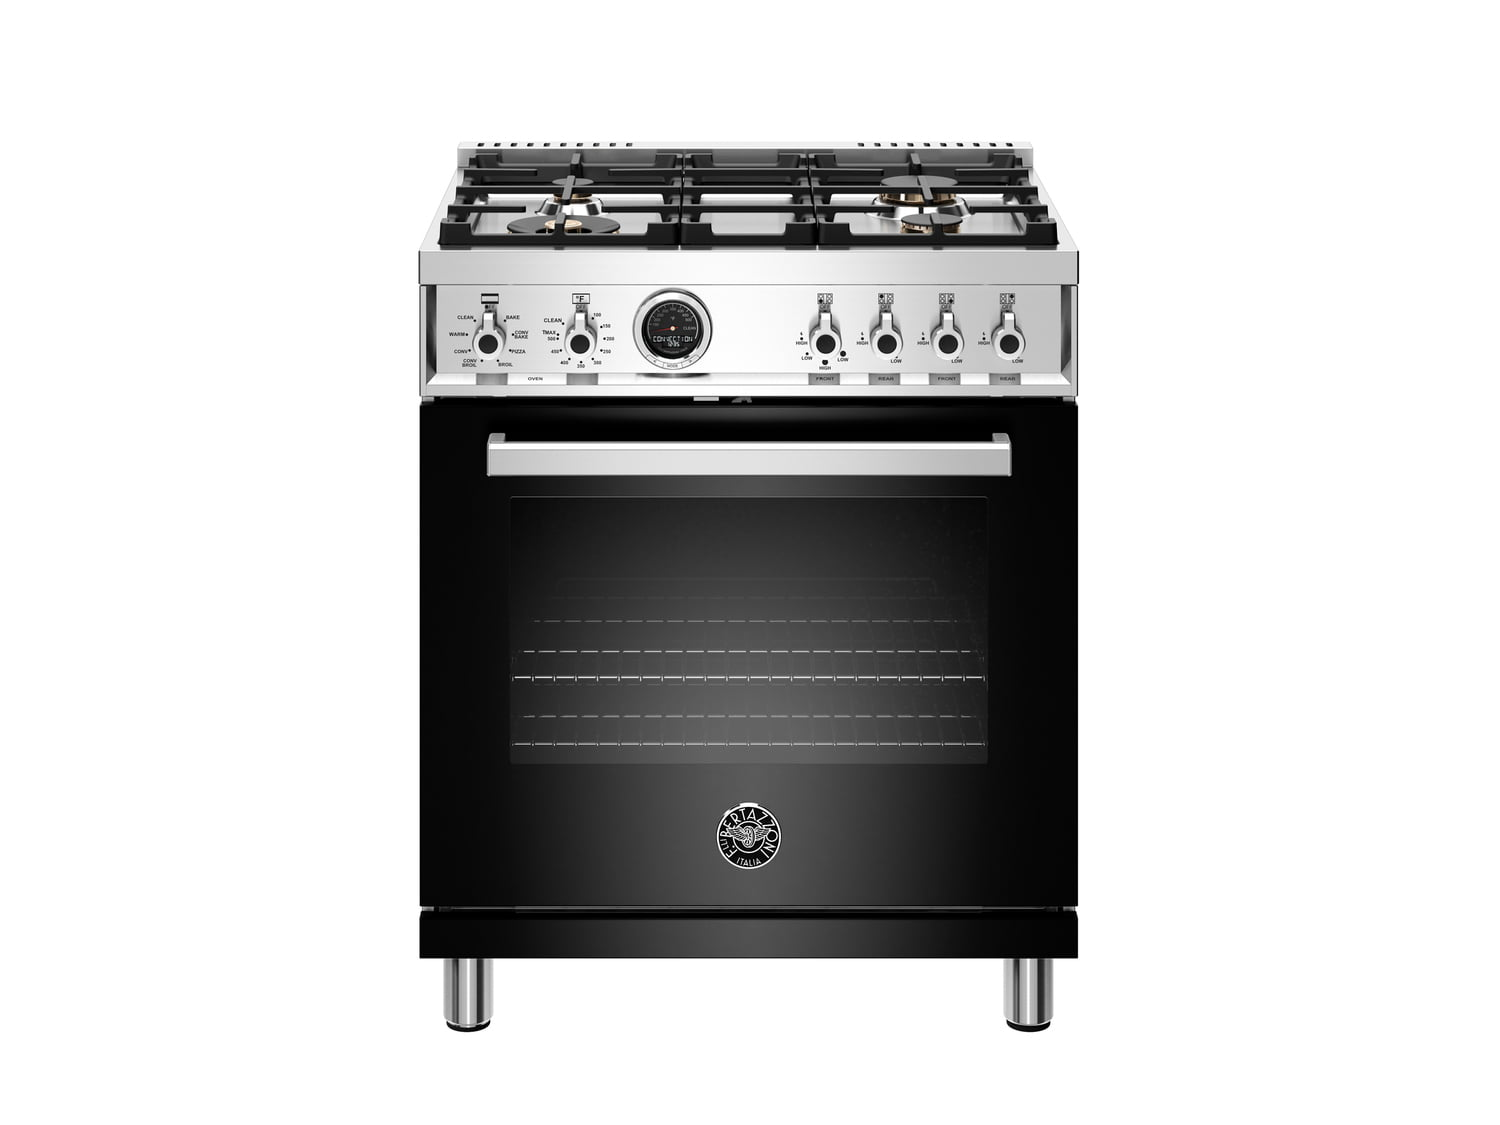 Load image into Gallery viewer, Bertazzoni PROF304DFSNET 30 Inch Dual Fuel Range, 4 Brass Burner, Electric Self-Clean Oven Nero